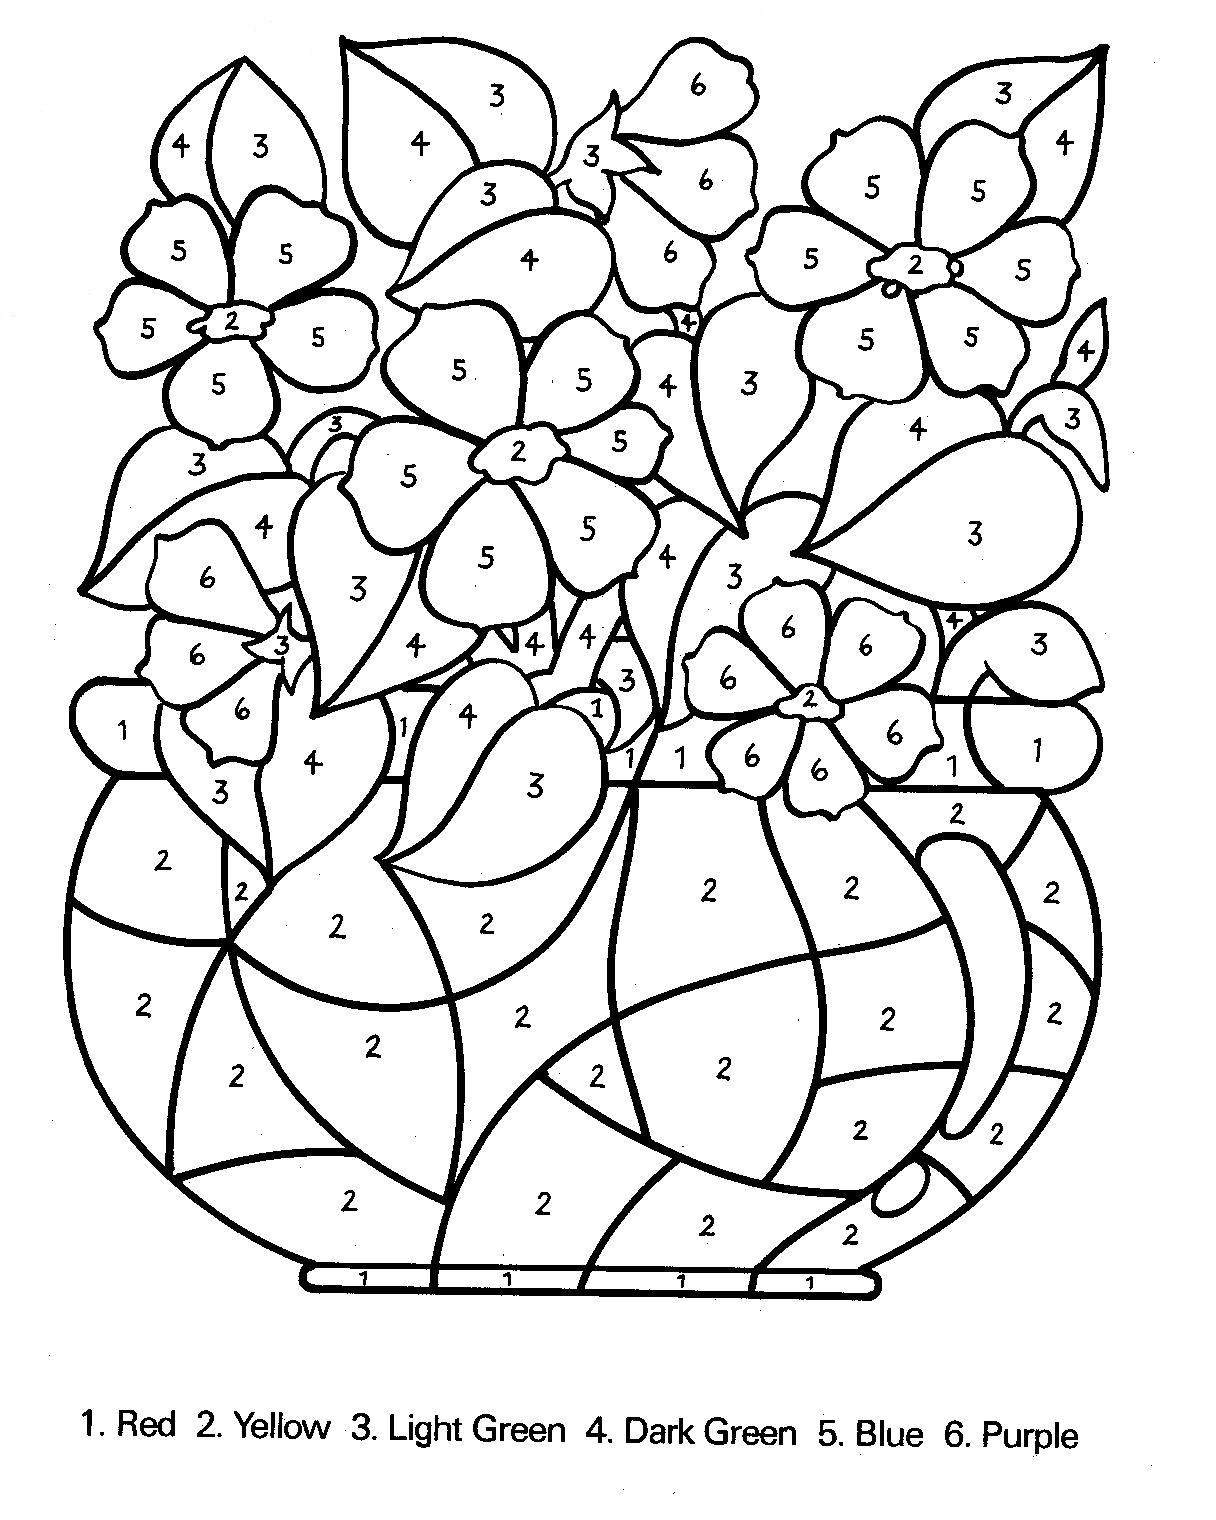 4 coloring sheet number 4 coloring page getcoloringpagescom coloring 4 sheet